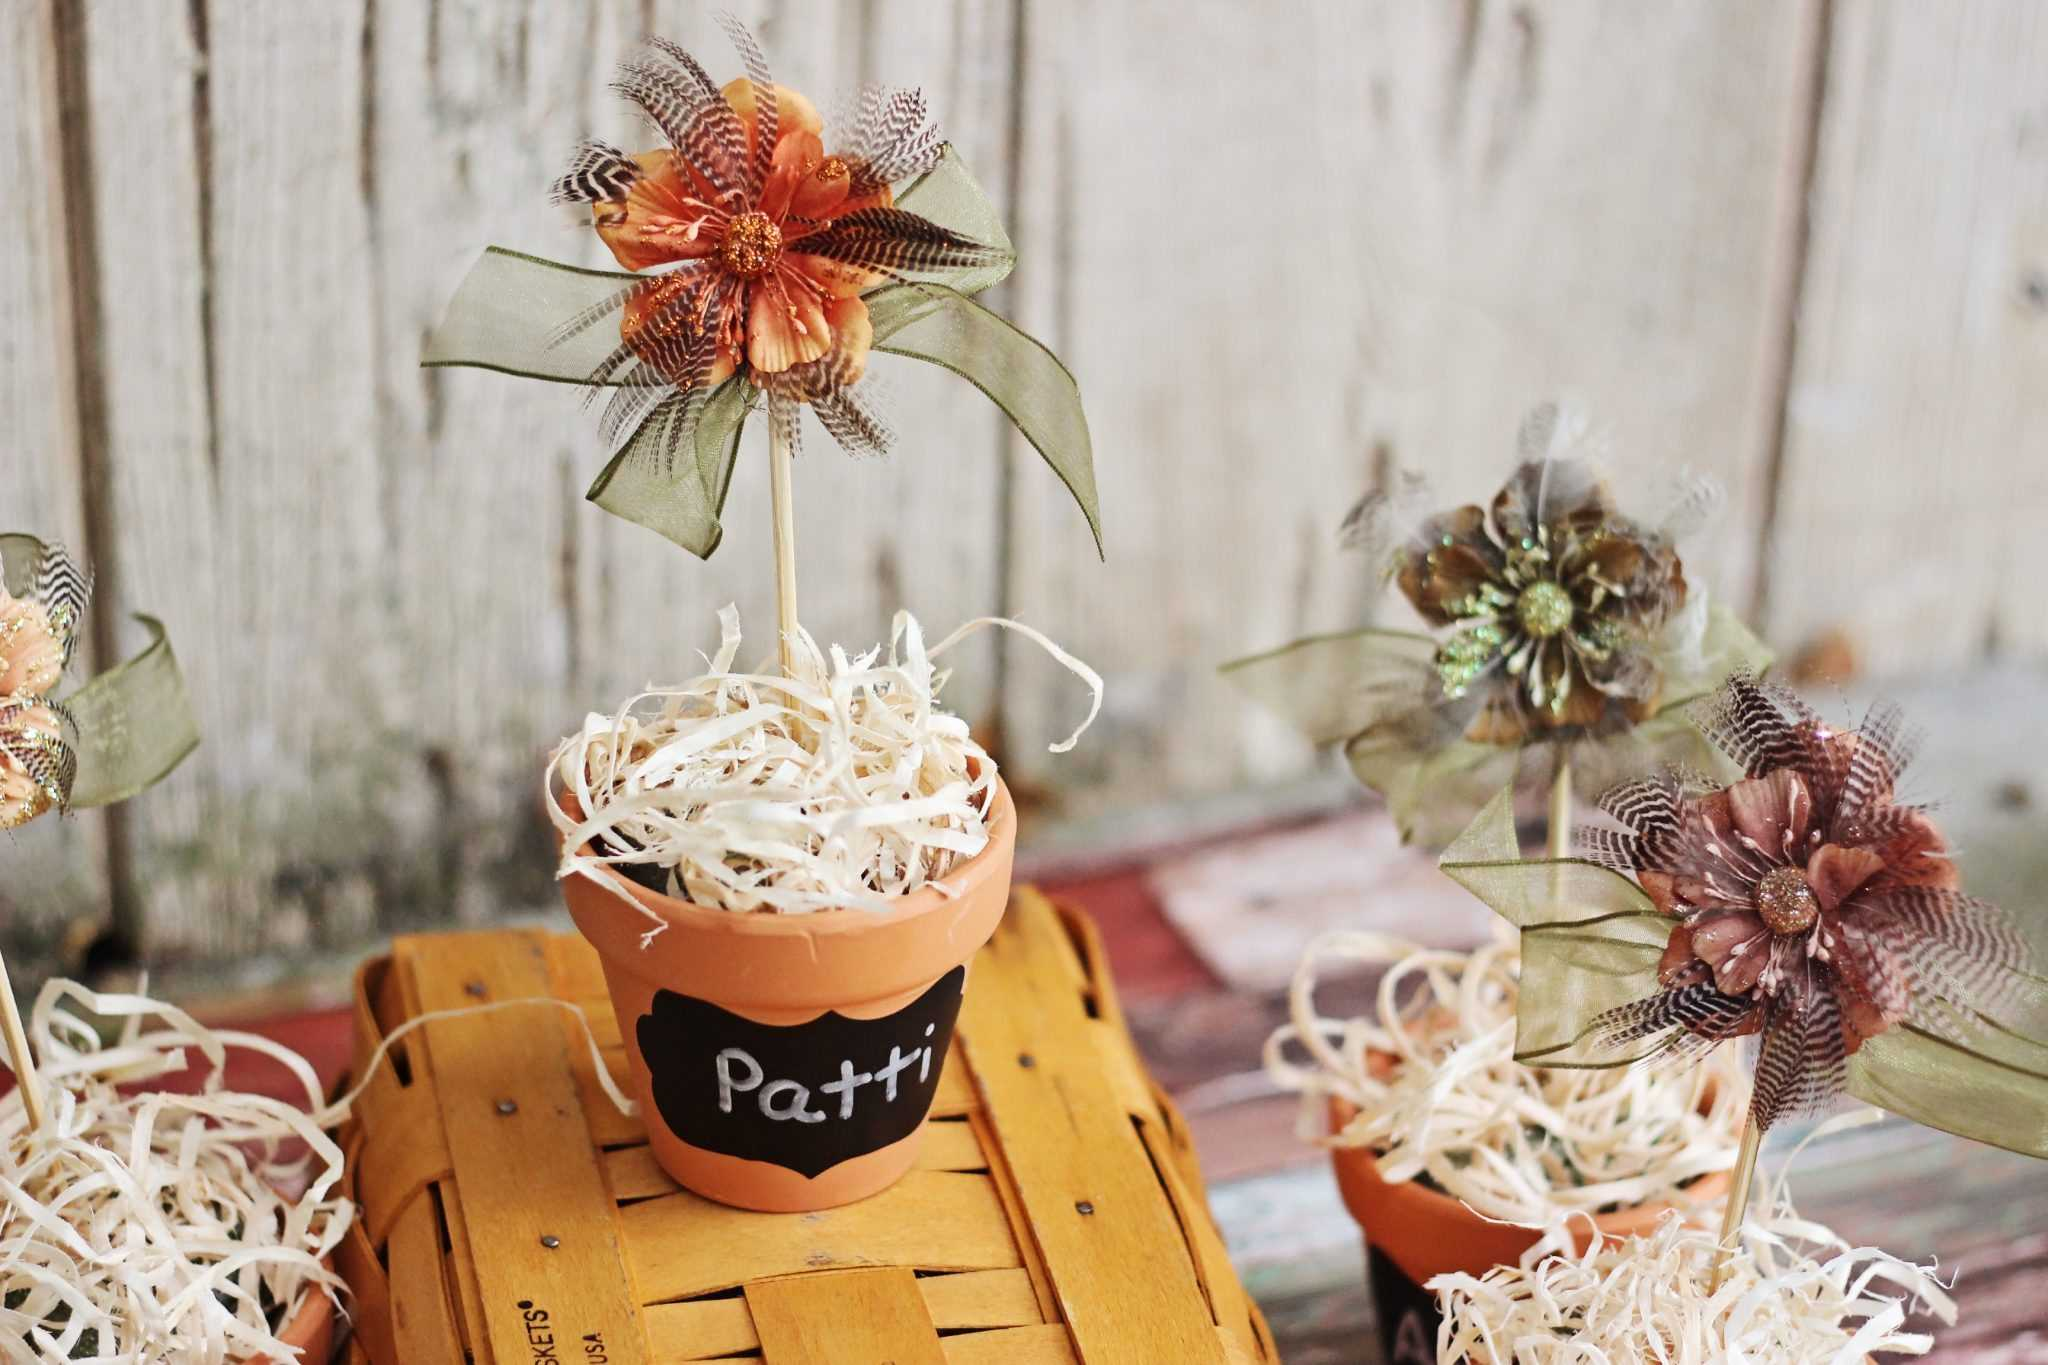 Make these Thanksgiving crafts and use them in lieu of place cards at the table. They double as cute fall decor until turkey day arrives!